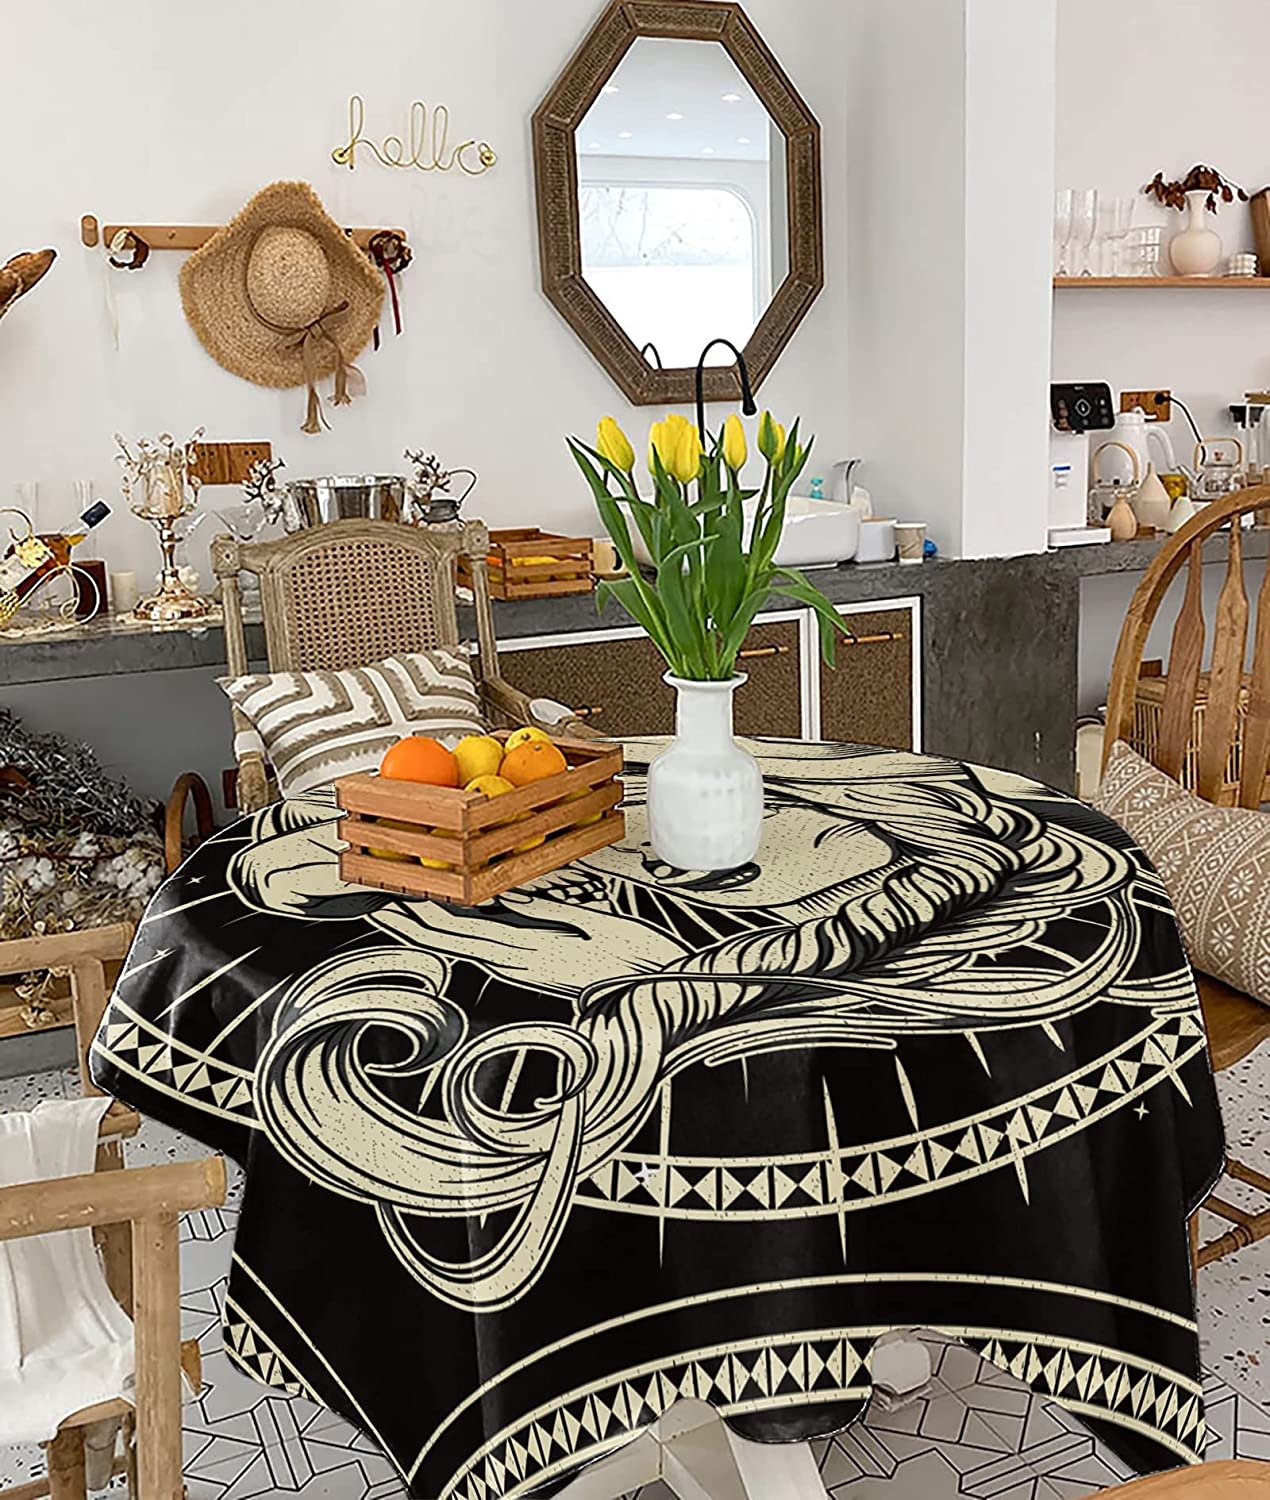 PartyShow Cotton Linen depot San Diego Mall Tablecloth Witch Long-haired with Skull